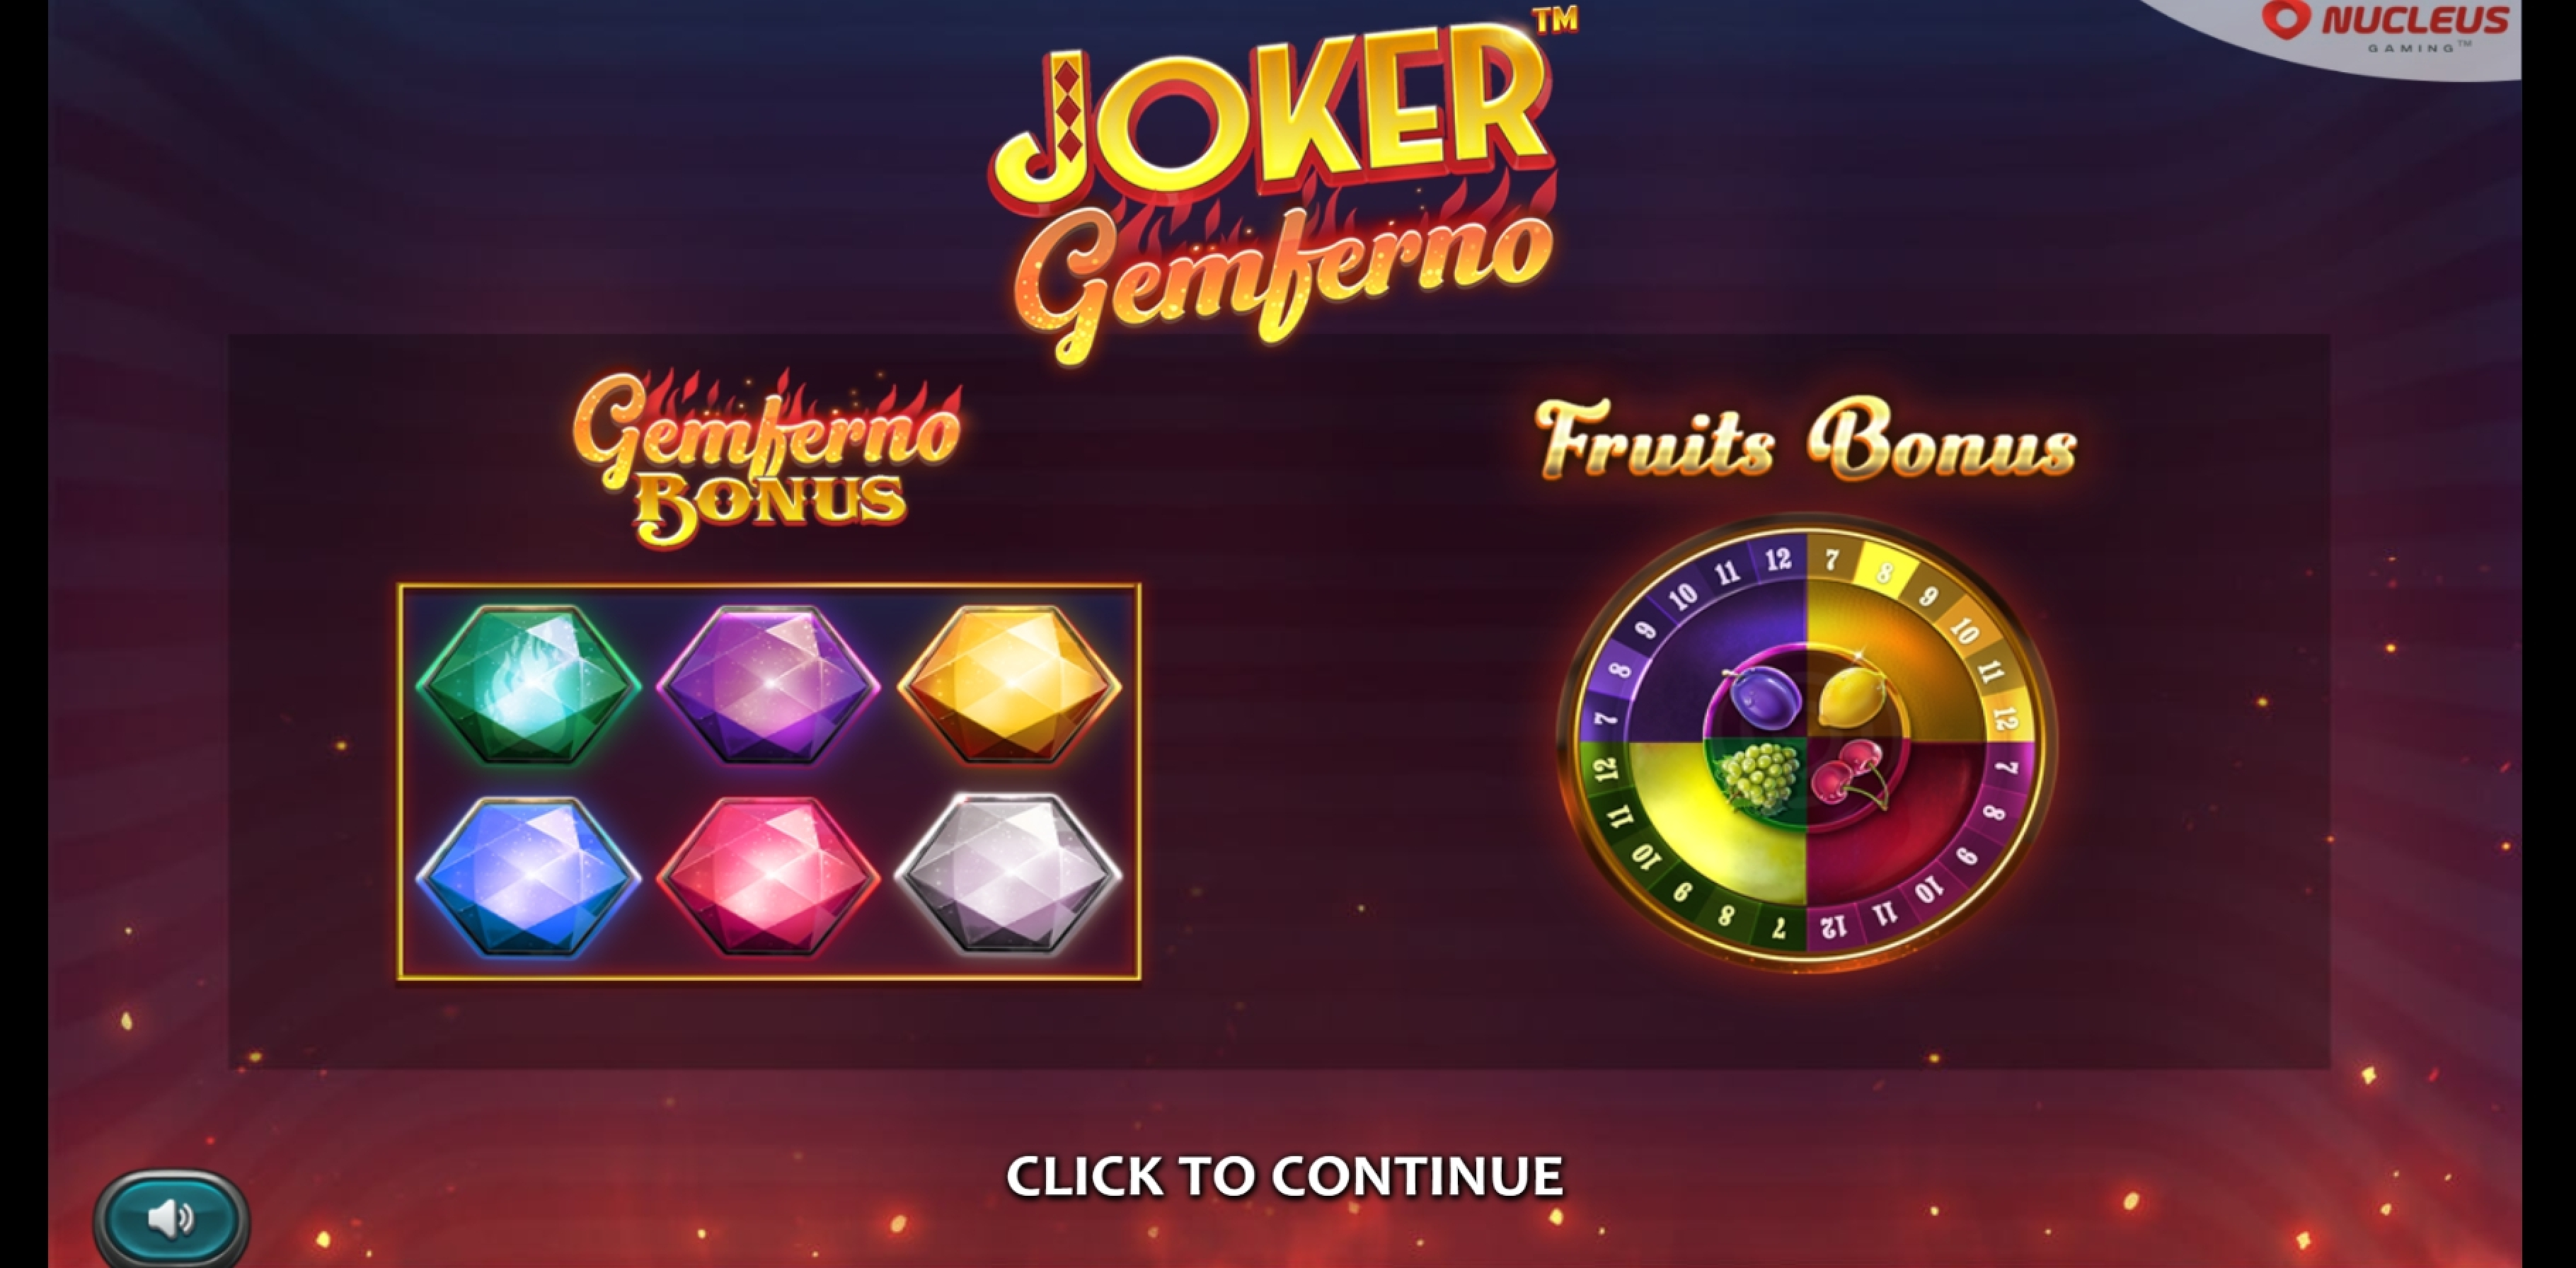 Play Joker Gemberno Free Casino Slot Game by Nucleus Gaming